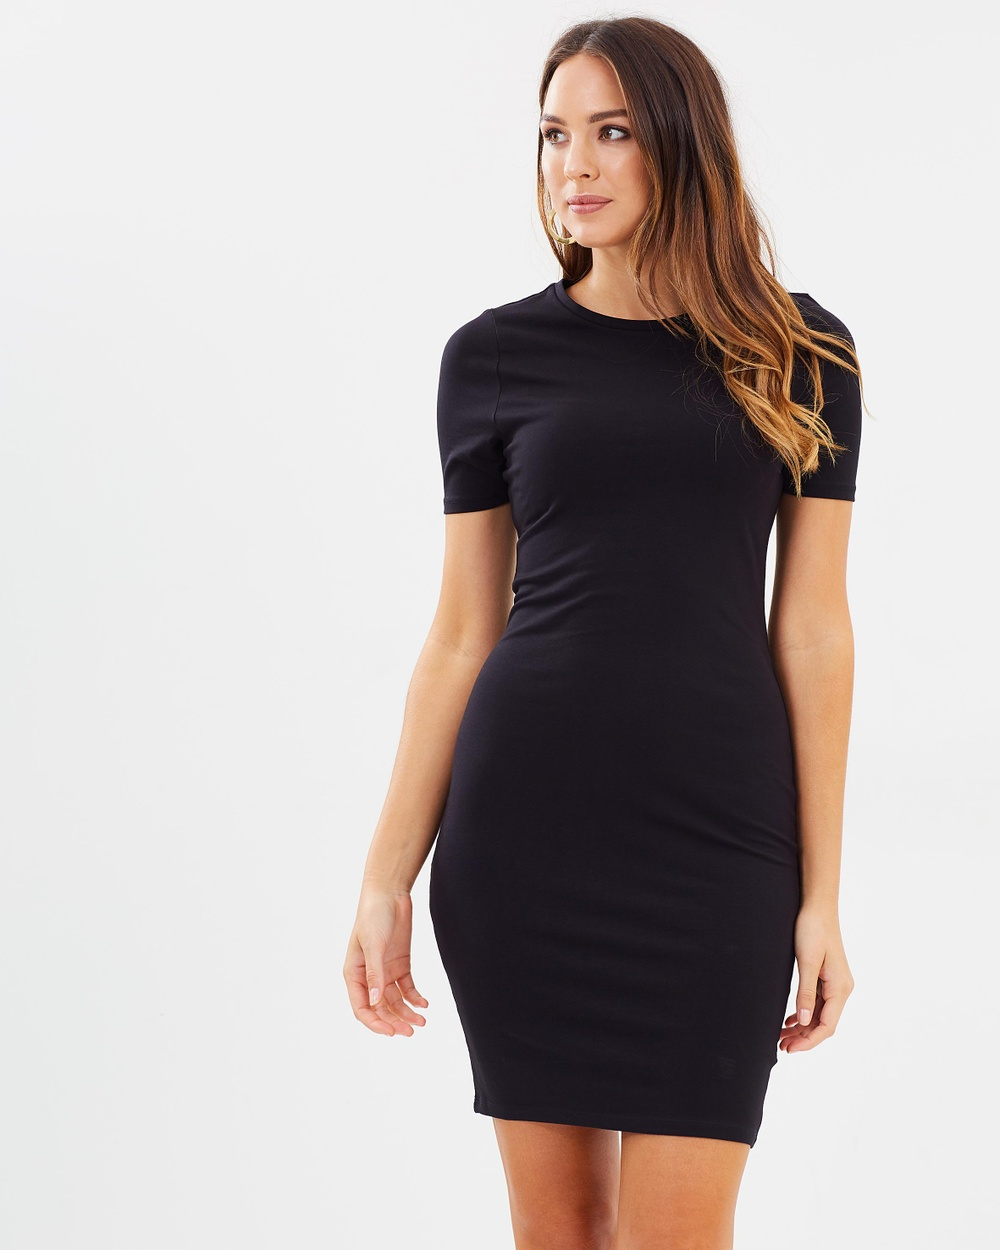 Dorothy Perkins Tee Dress Dresses Black Tee Dress